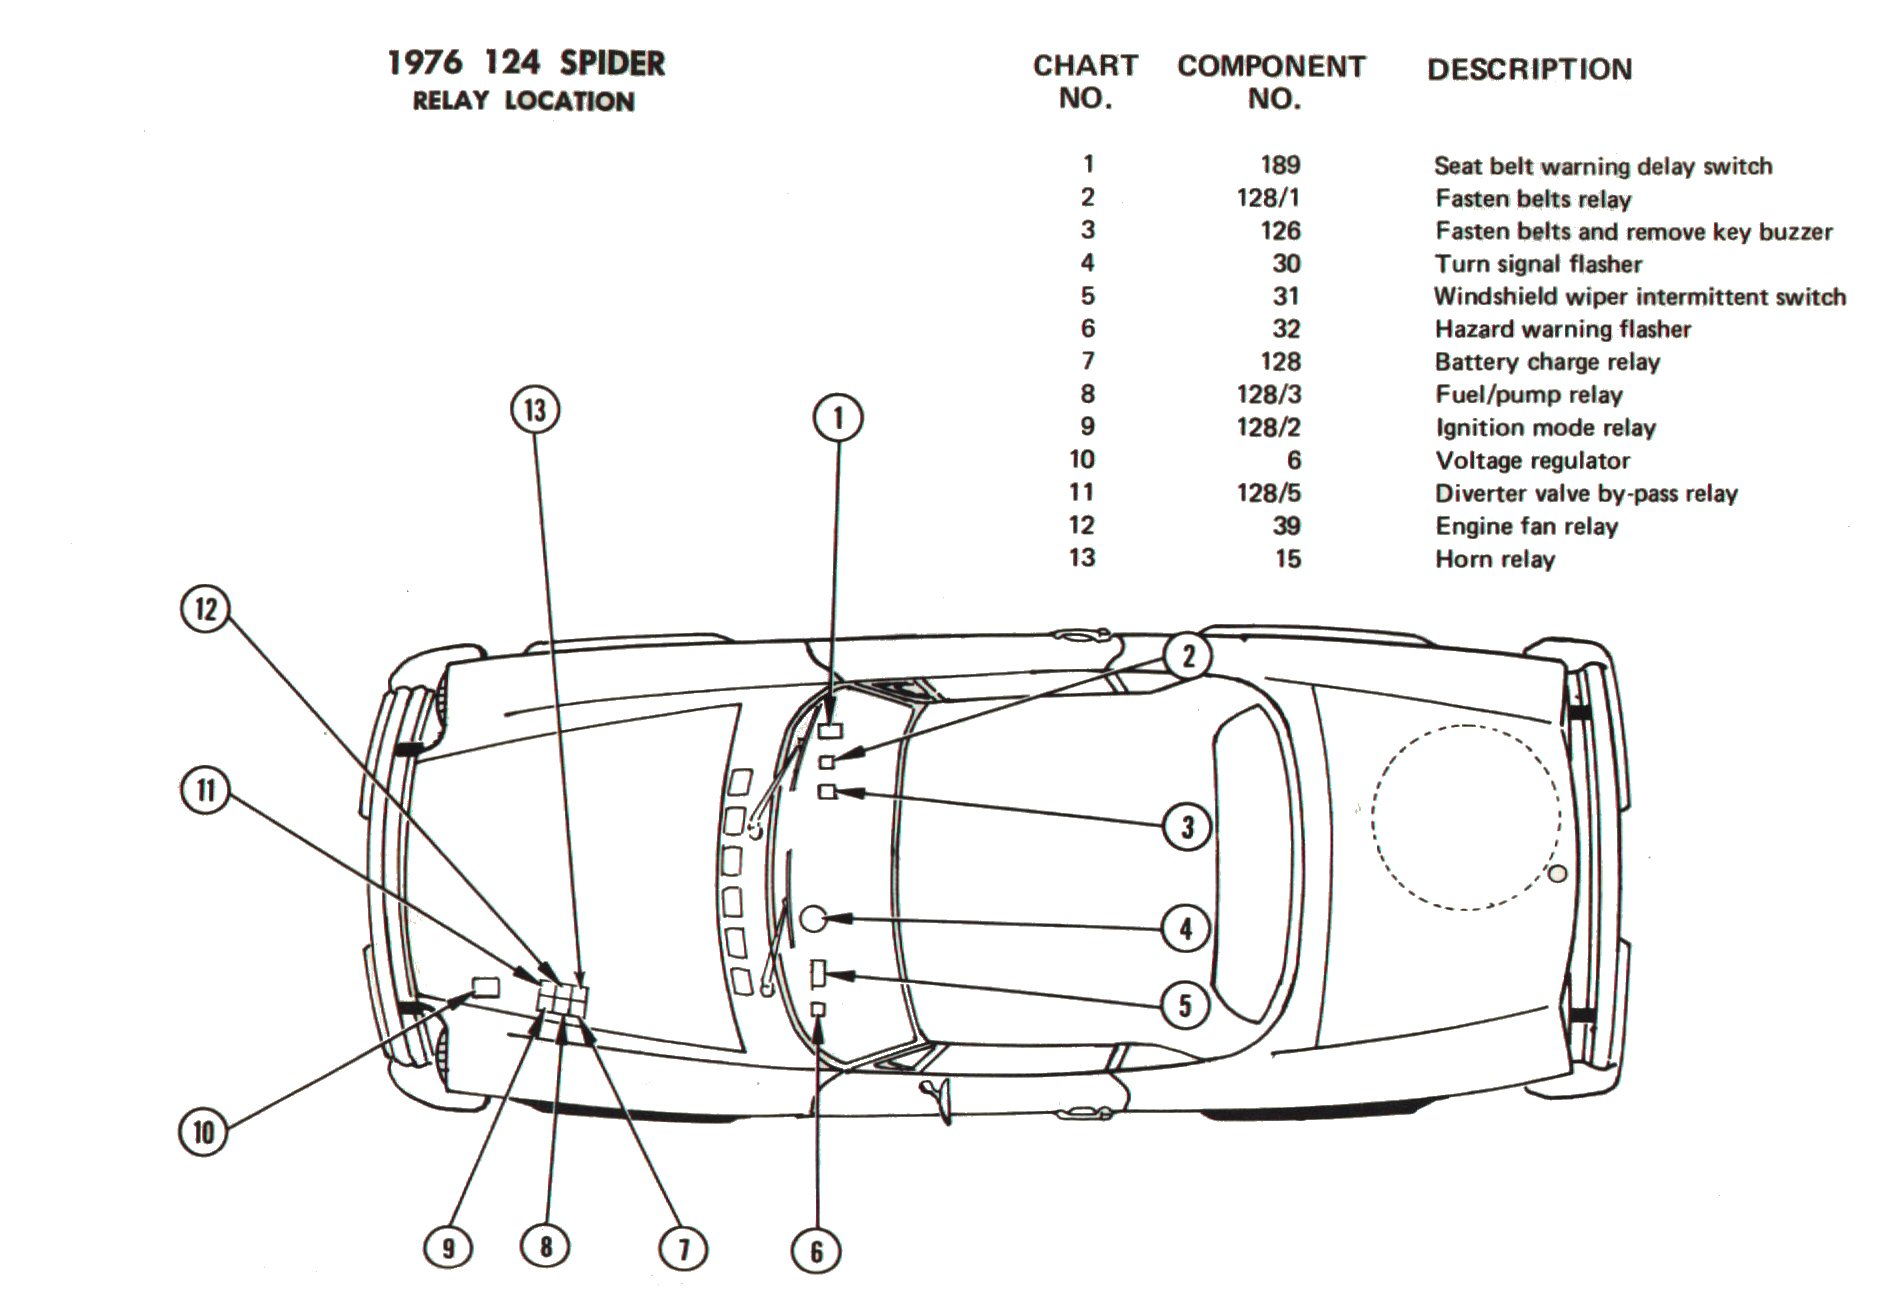 0 fiat 124 spider electrical schemes 1977 fiat spider wiring diagram at eliteediting.co